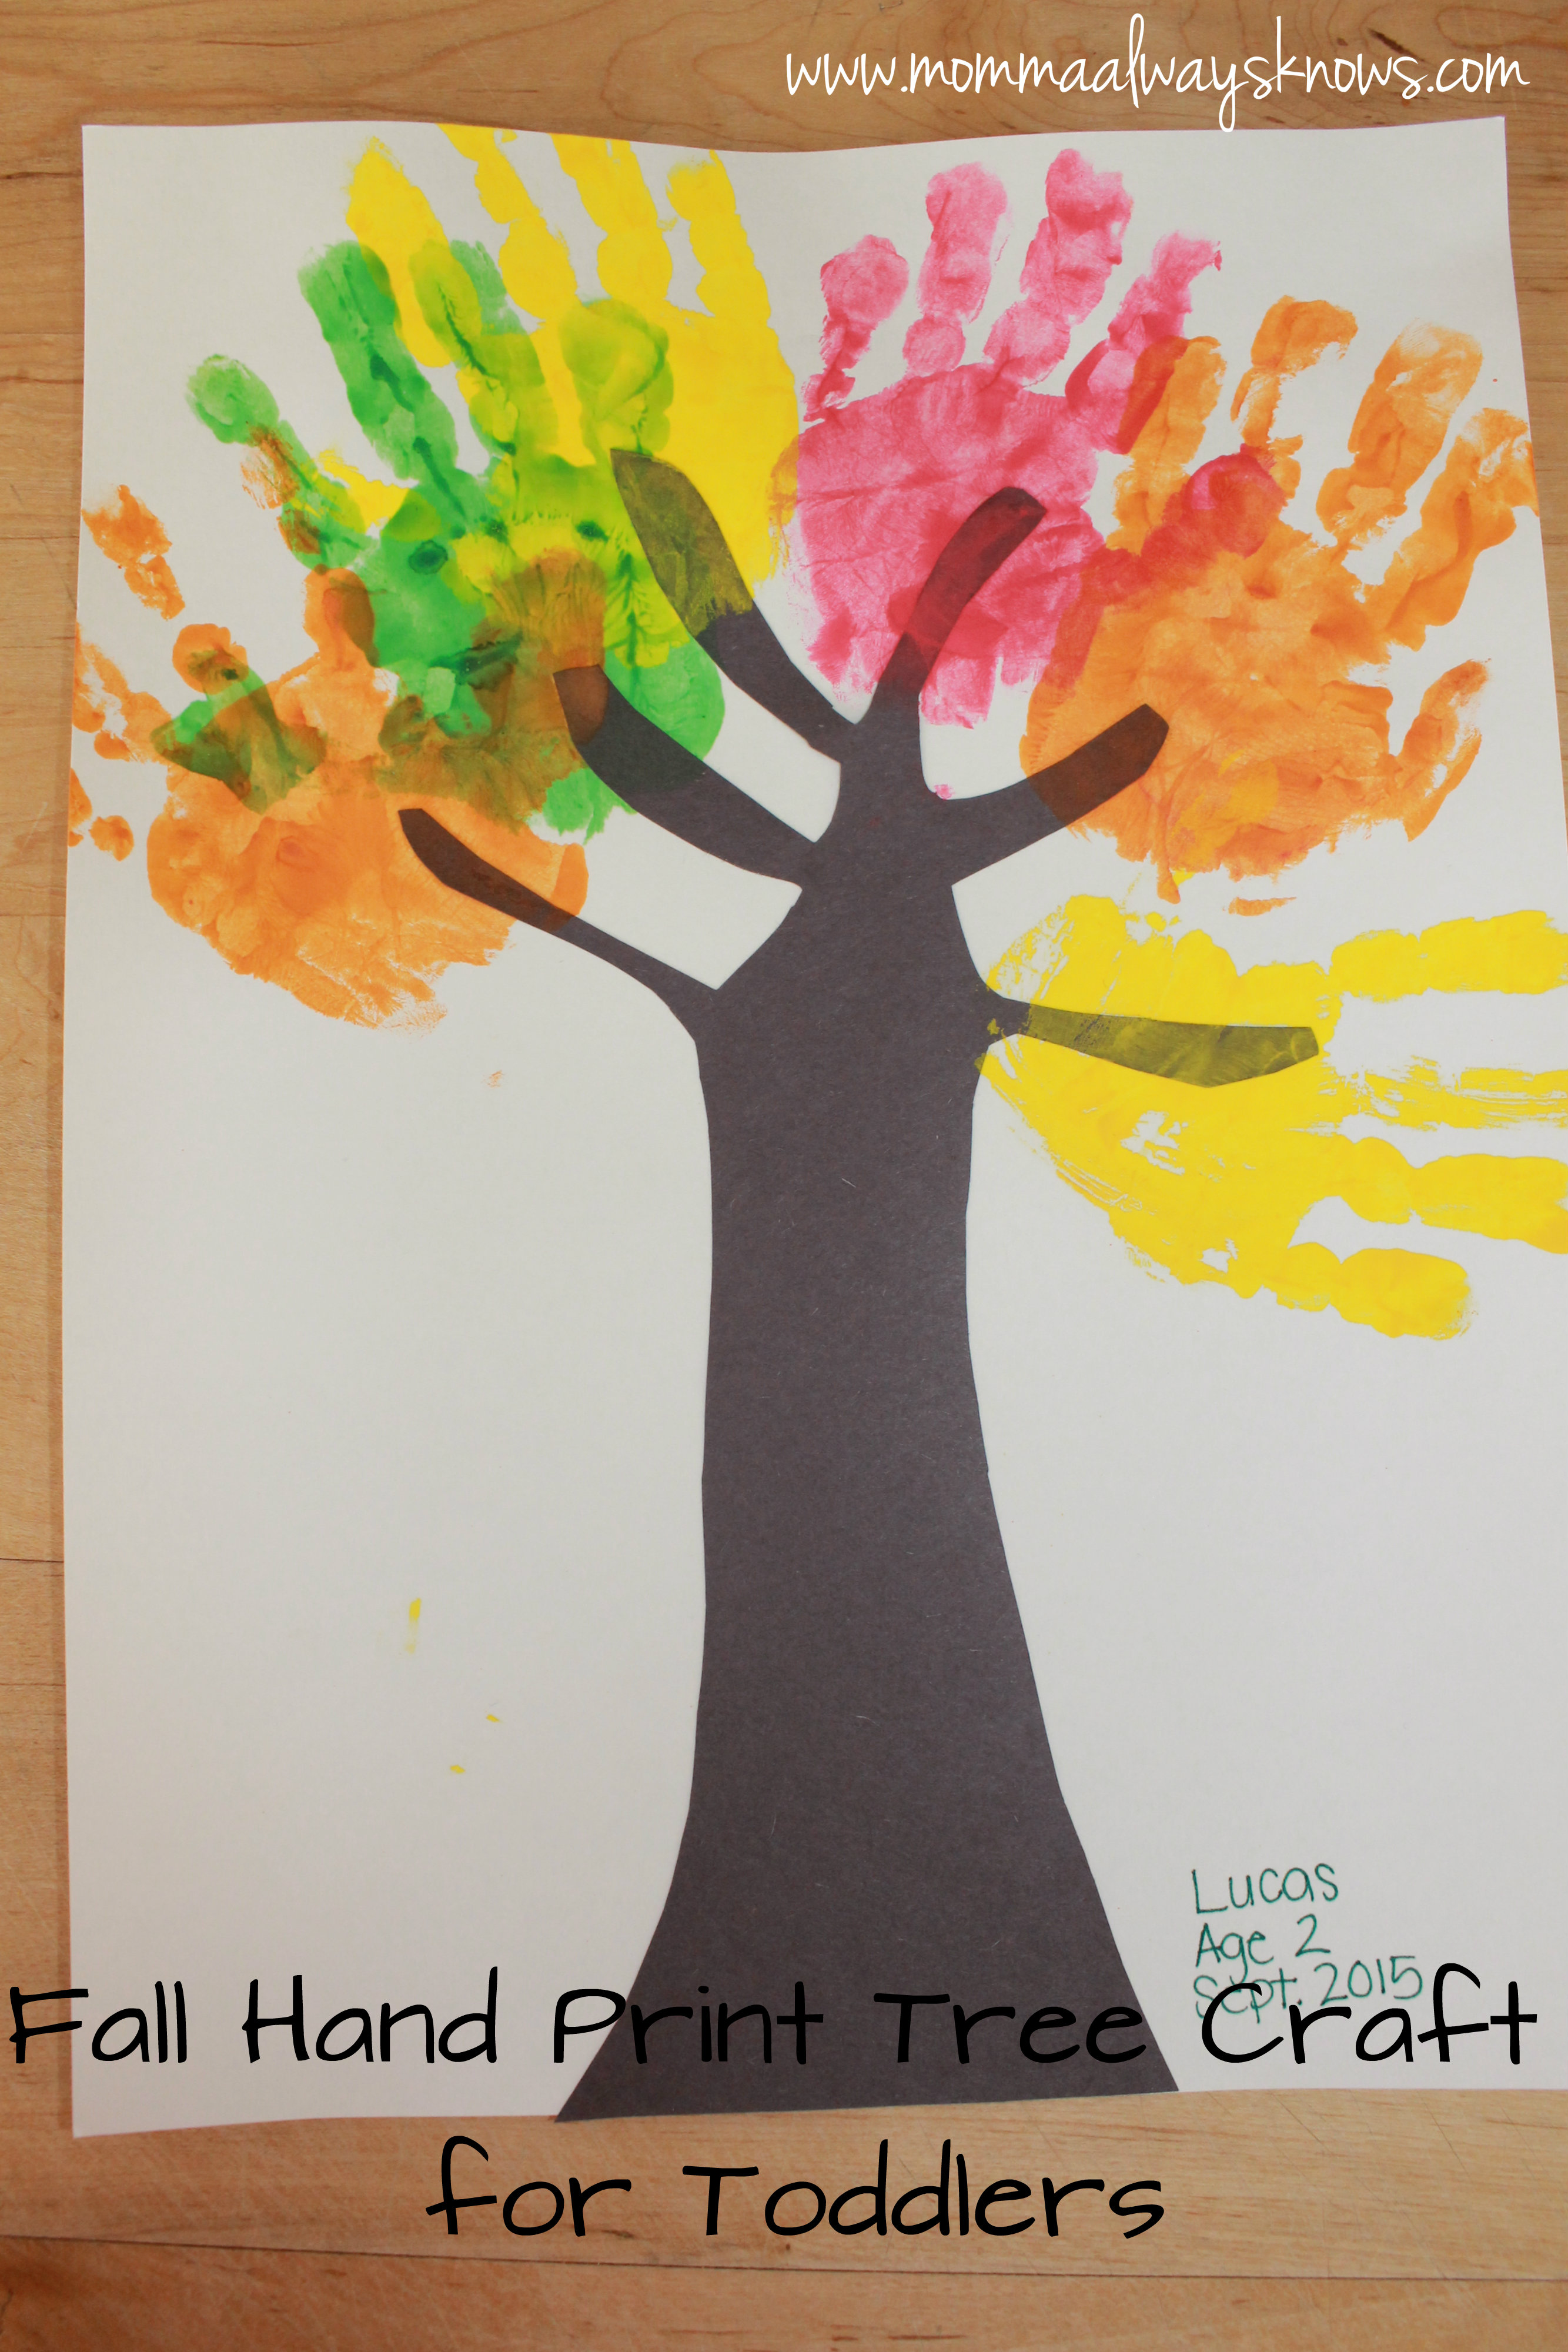 Fall Hand Print Tree Craft For Toddlers Mommaalwaysknows